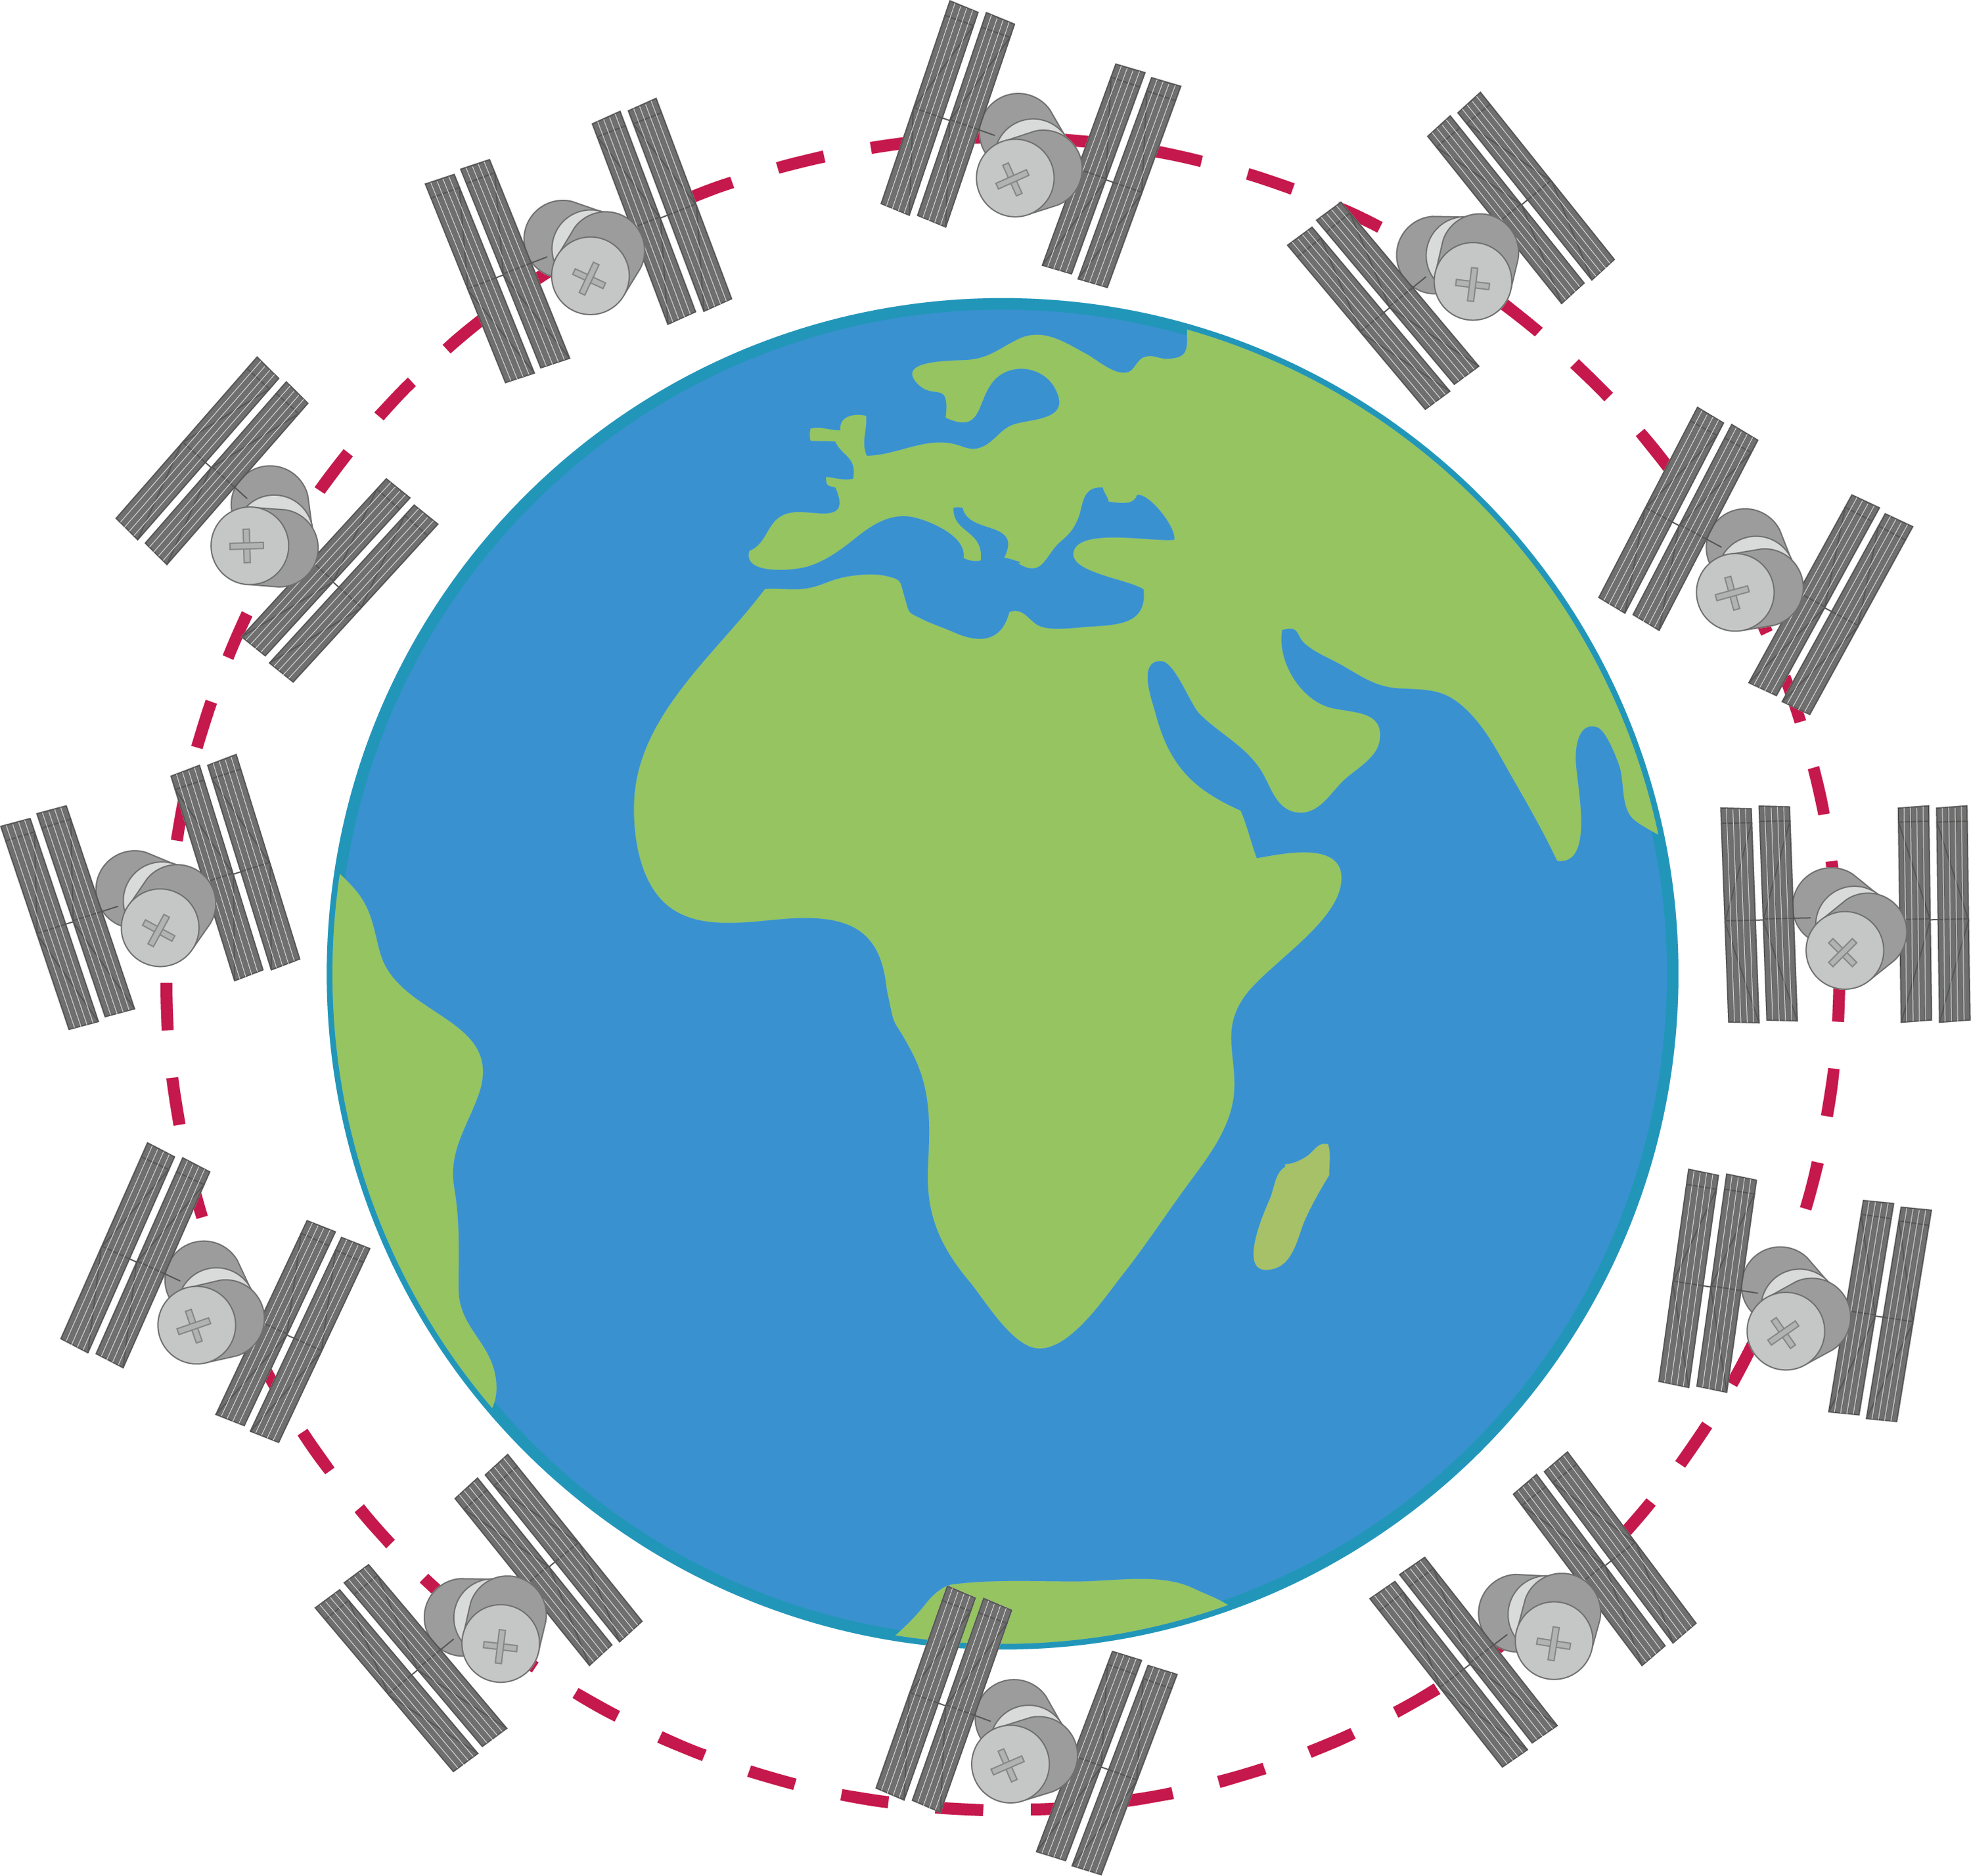 <stamp theme='pc-green1'>Doc. 2</stamp> Trajectoire de la station spatiale internationale.